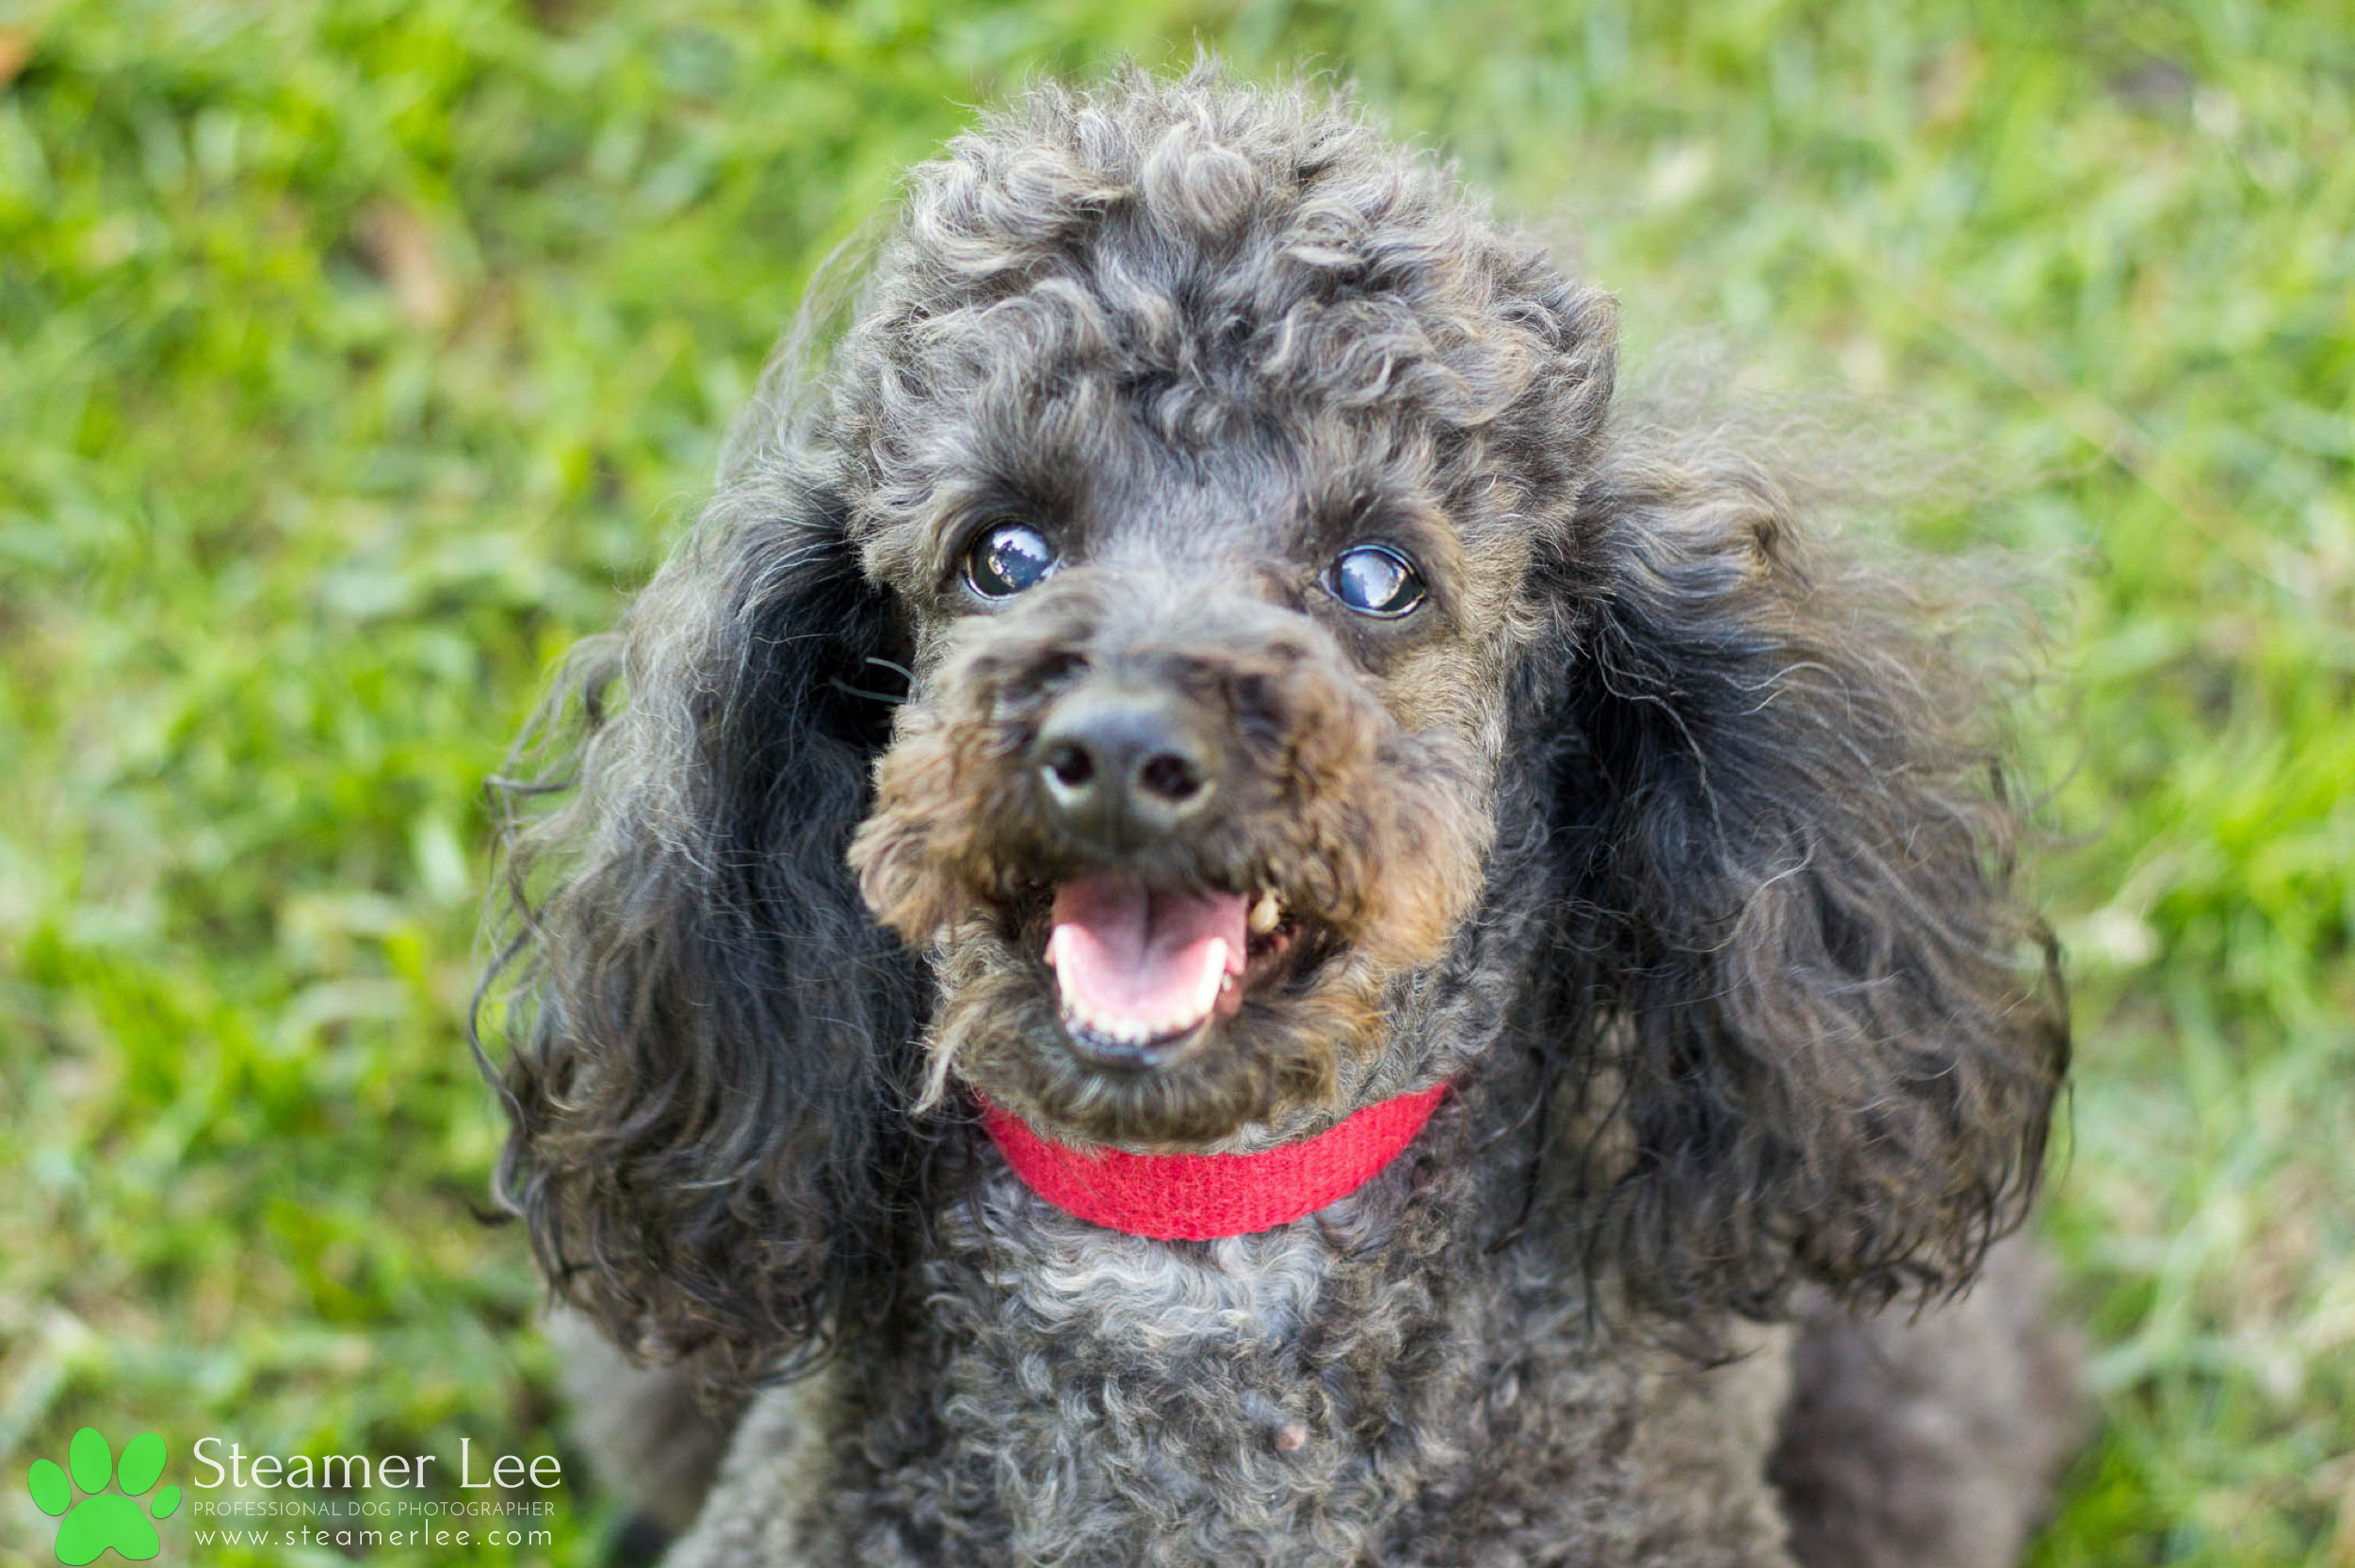 004 Steamer Lee Dog Photography - Orange County Dog Photography - German Shepherd Rottweiler Mix_Poodle.JPG